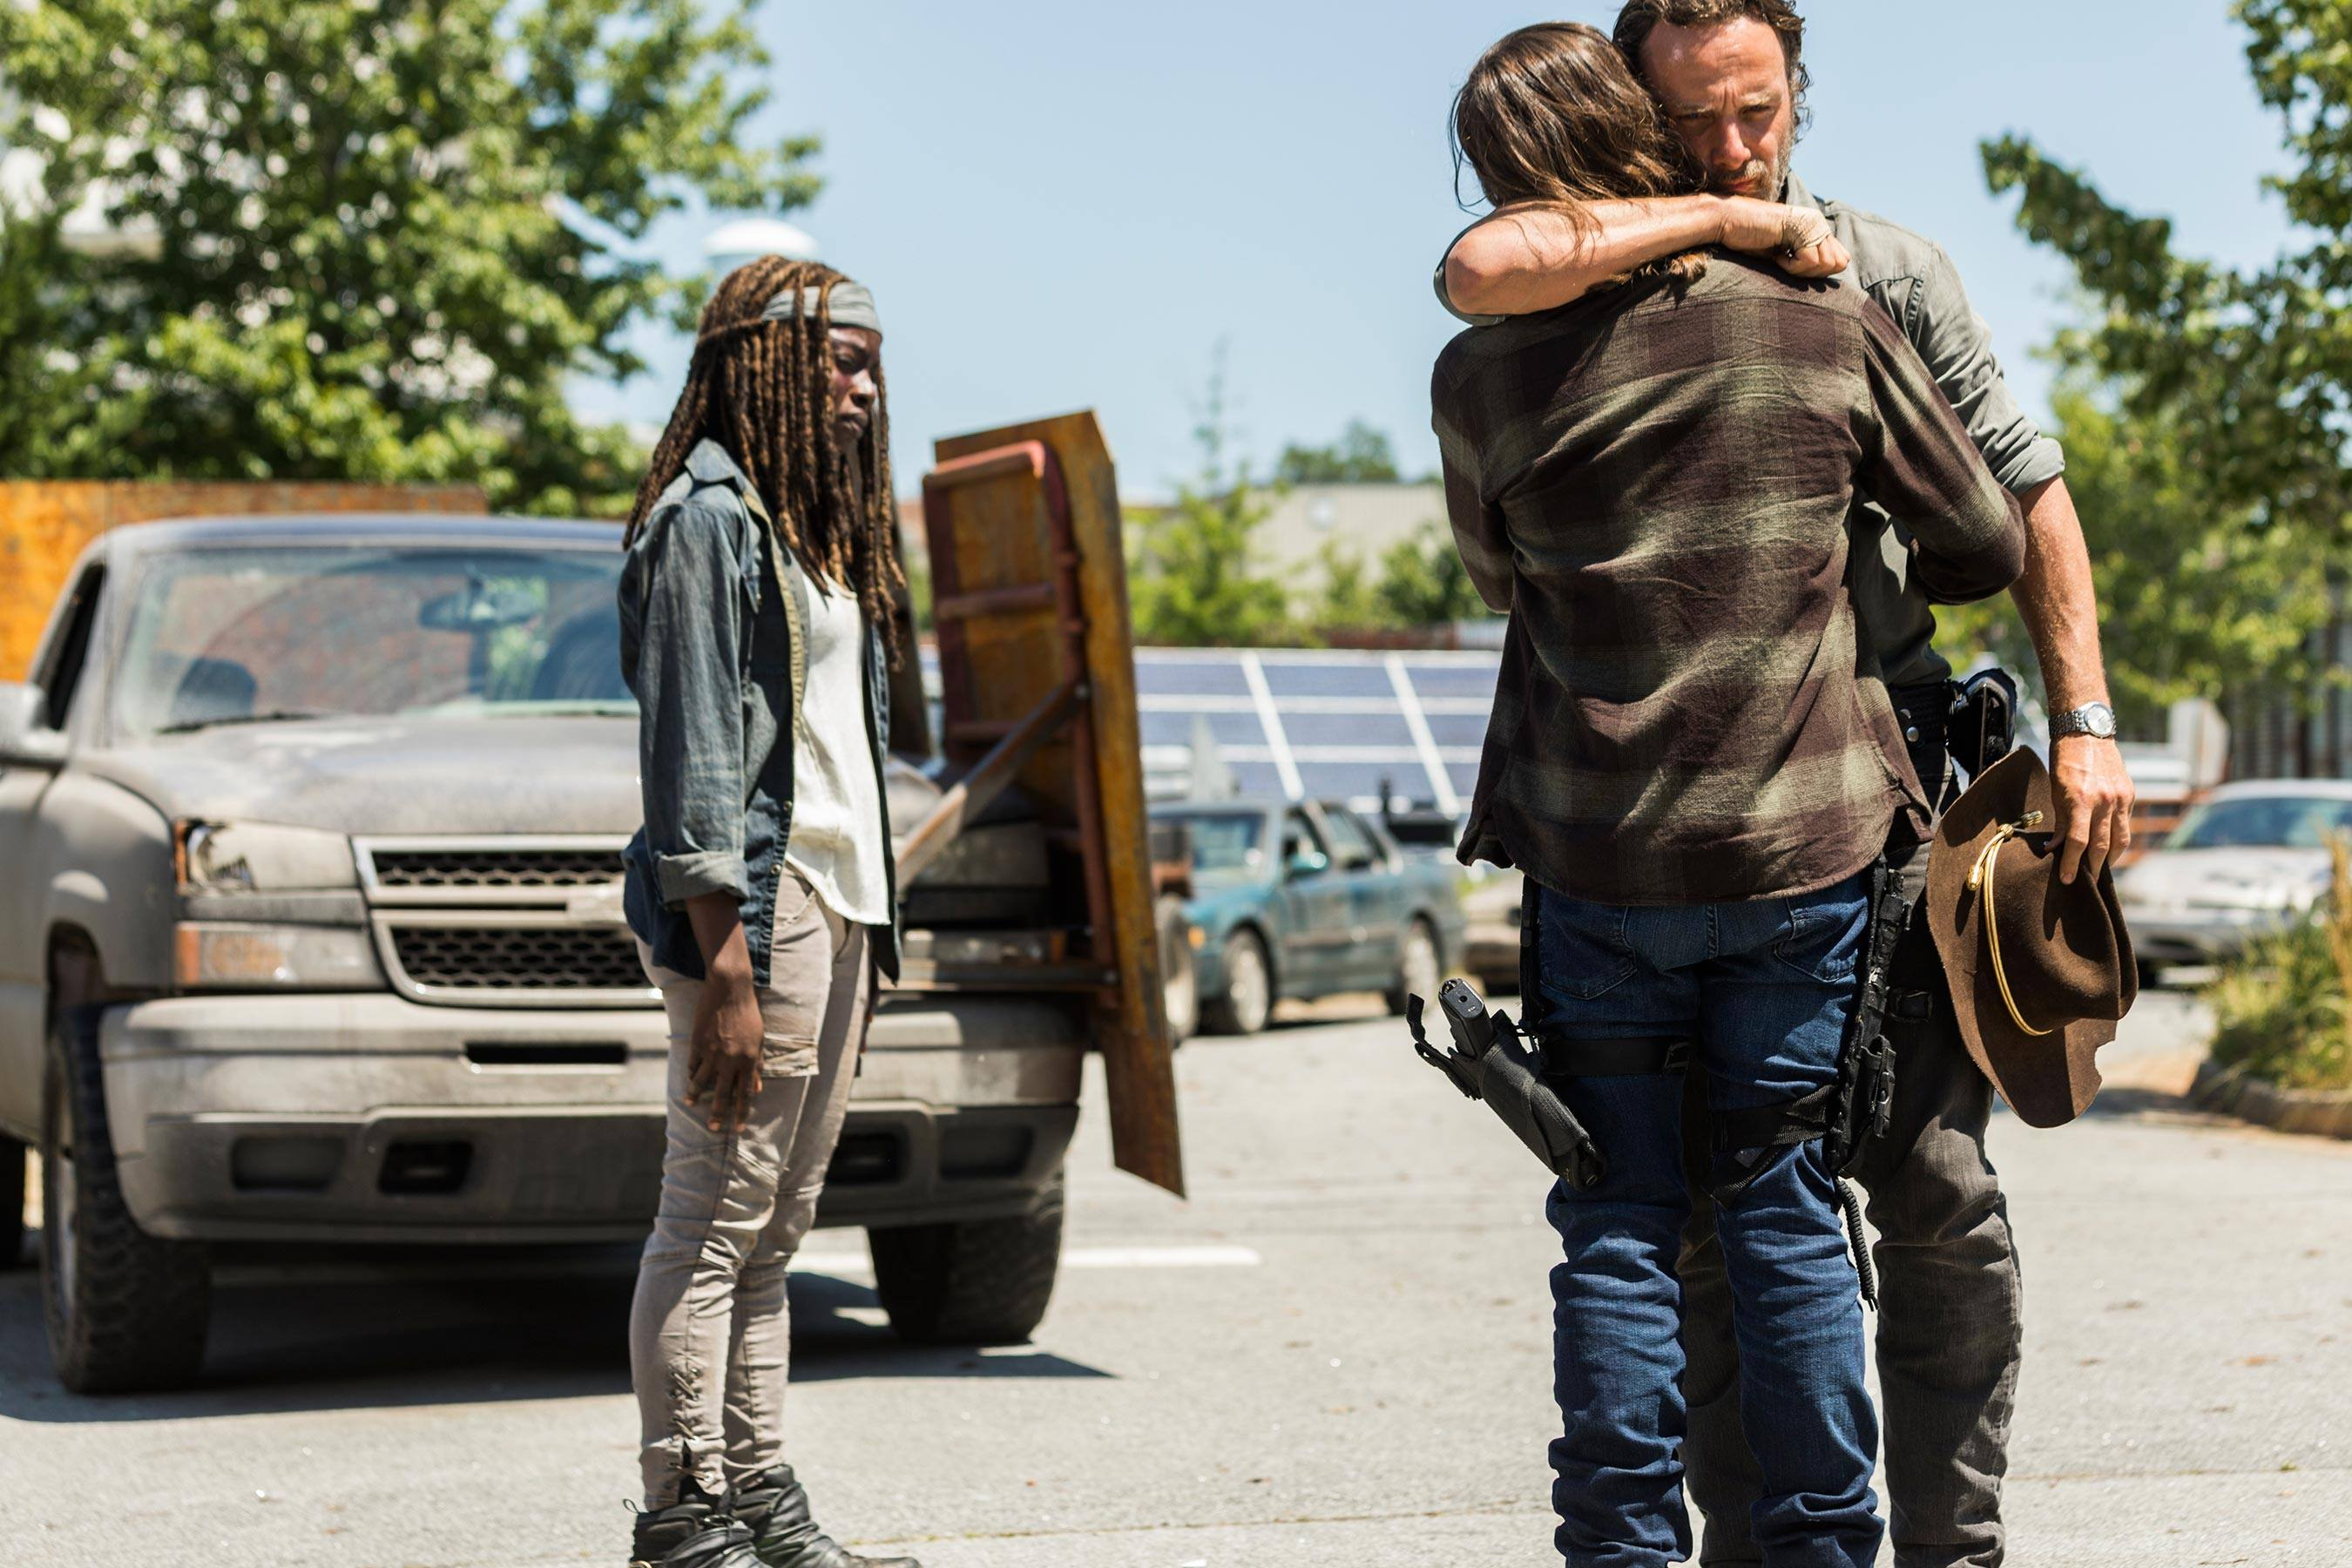 'The Walking Dead' season 8: Chandler Riggs devastated